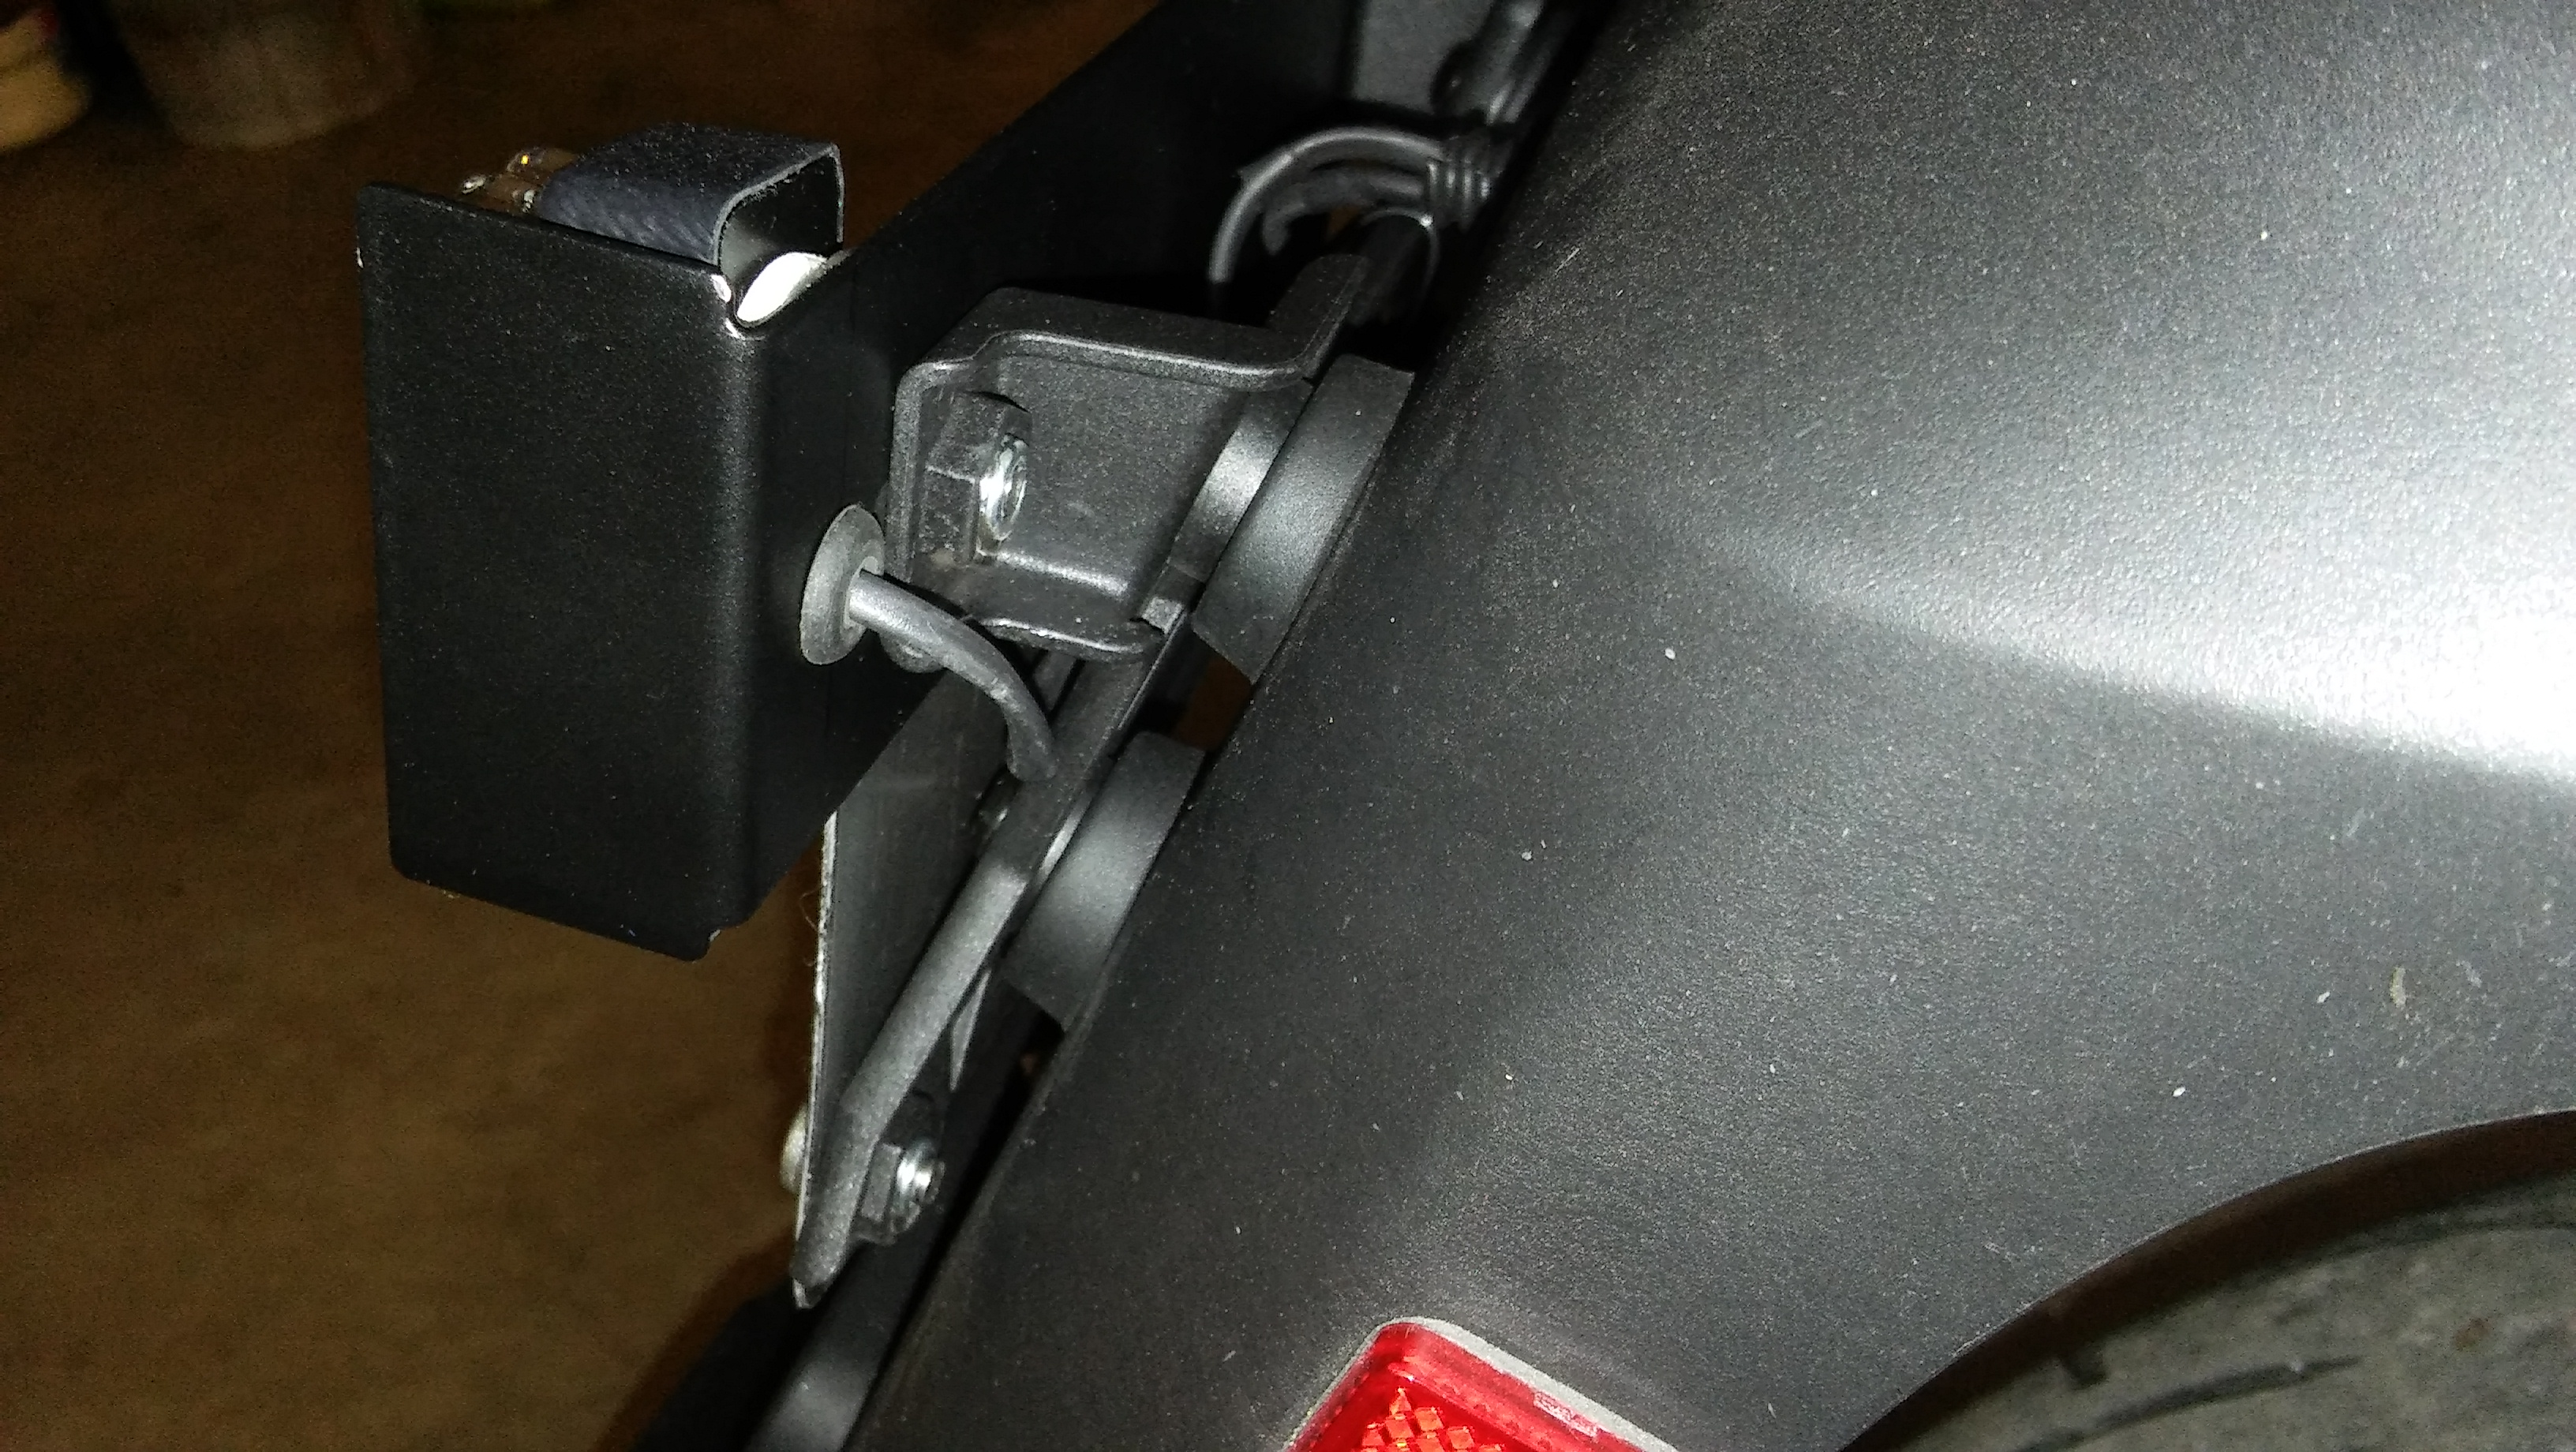 Flashing Brake Light System For Rtw Bmw Luxury Touring Community 2011 R1200rt Wiring Diagram Click Image Larger Version Name On Fender Views 207 Size